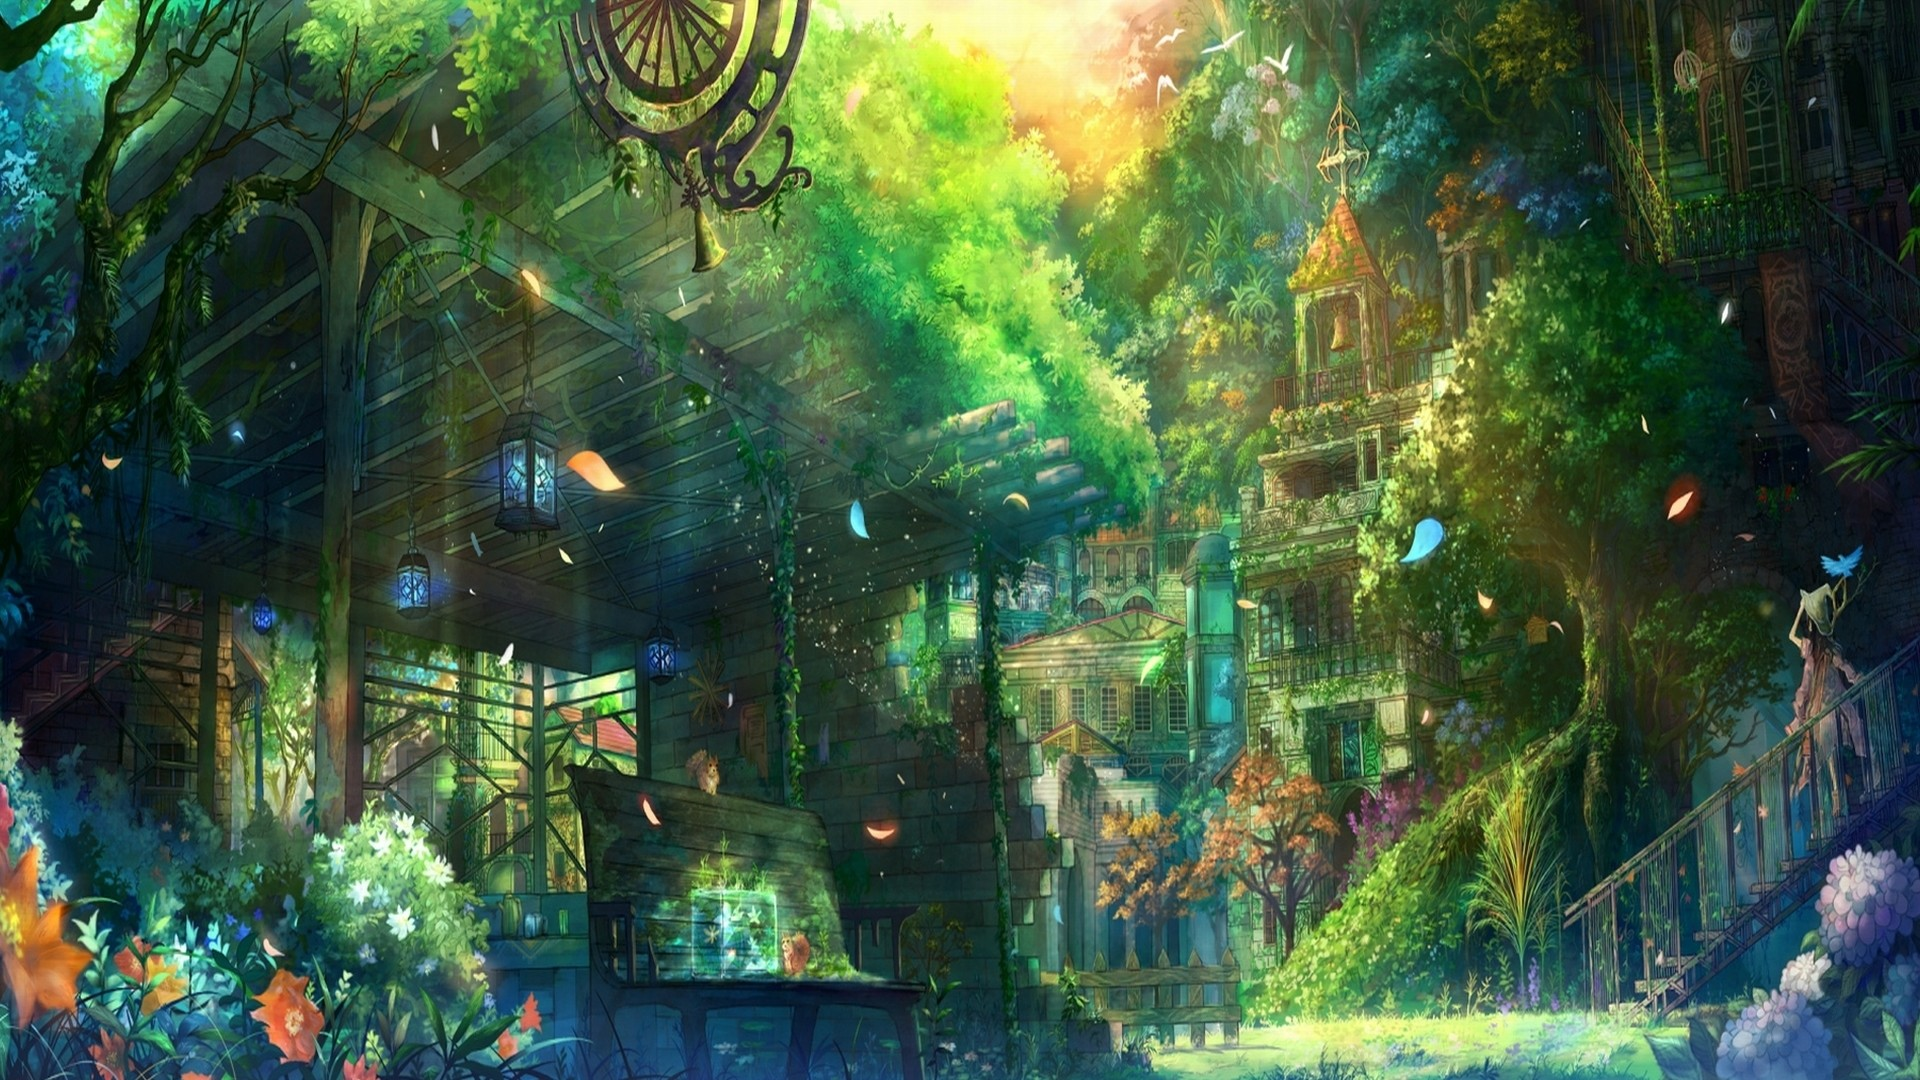 1920x1080 Anime City Scenery Wallpapers High Definition with High Definition Wallpaper   px 1.44 MB